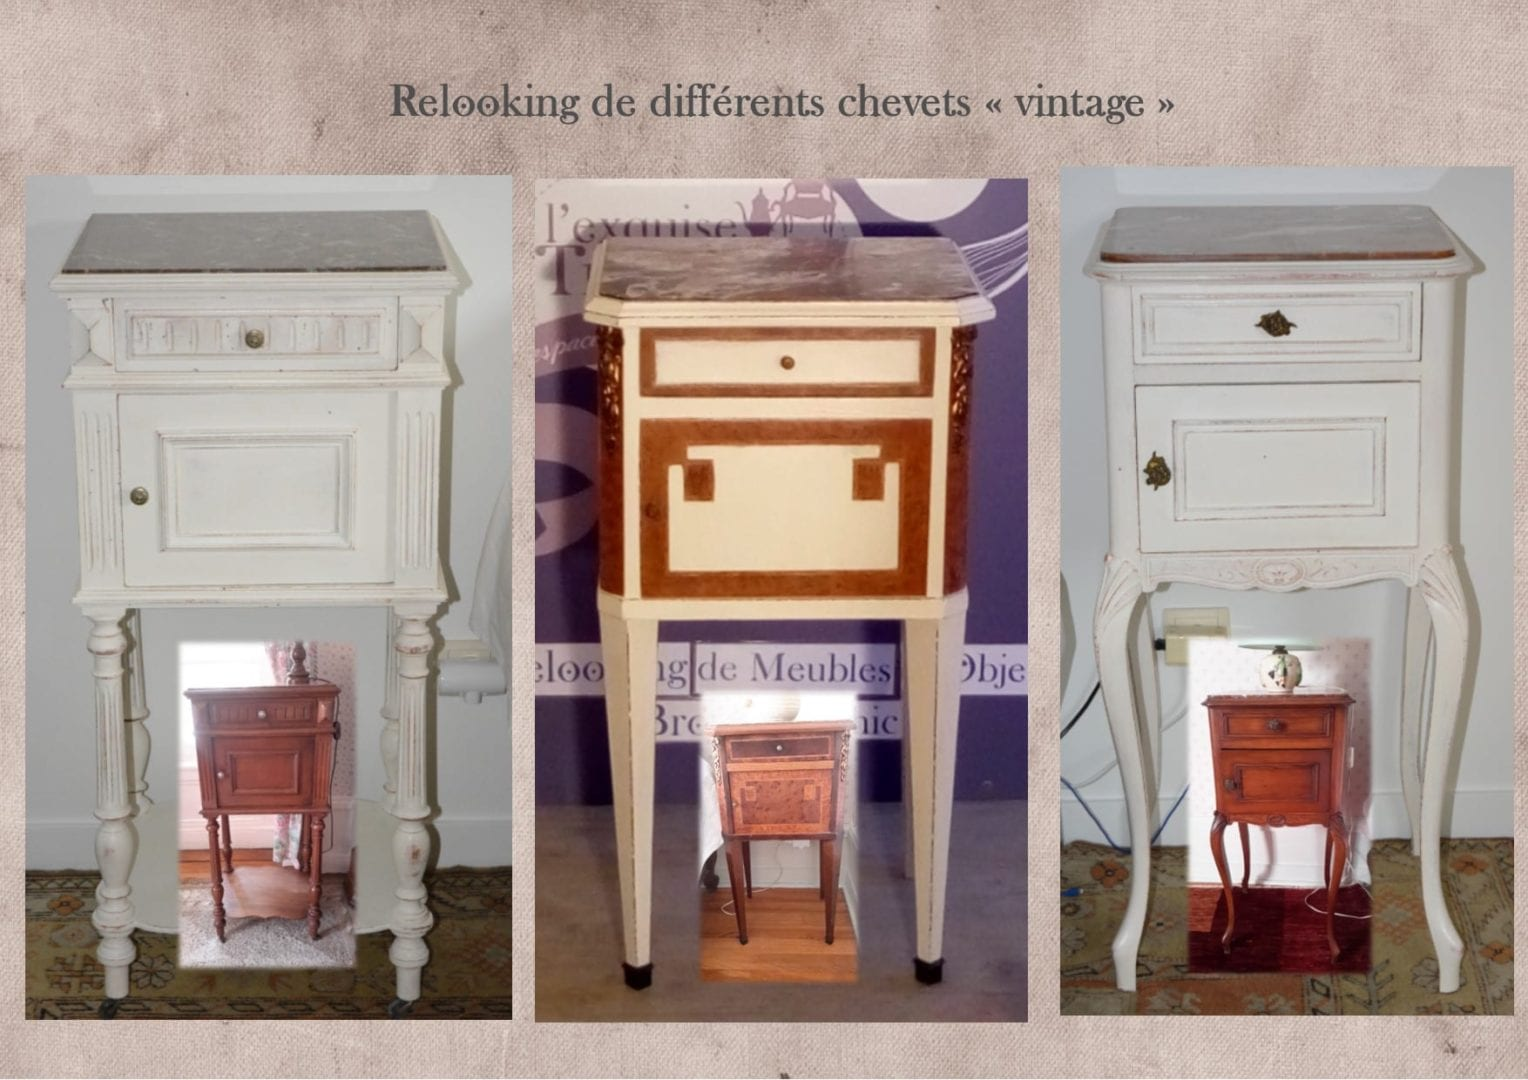 relooking chevet vintage lexquisetrouvaille